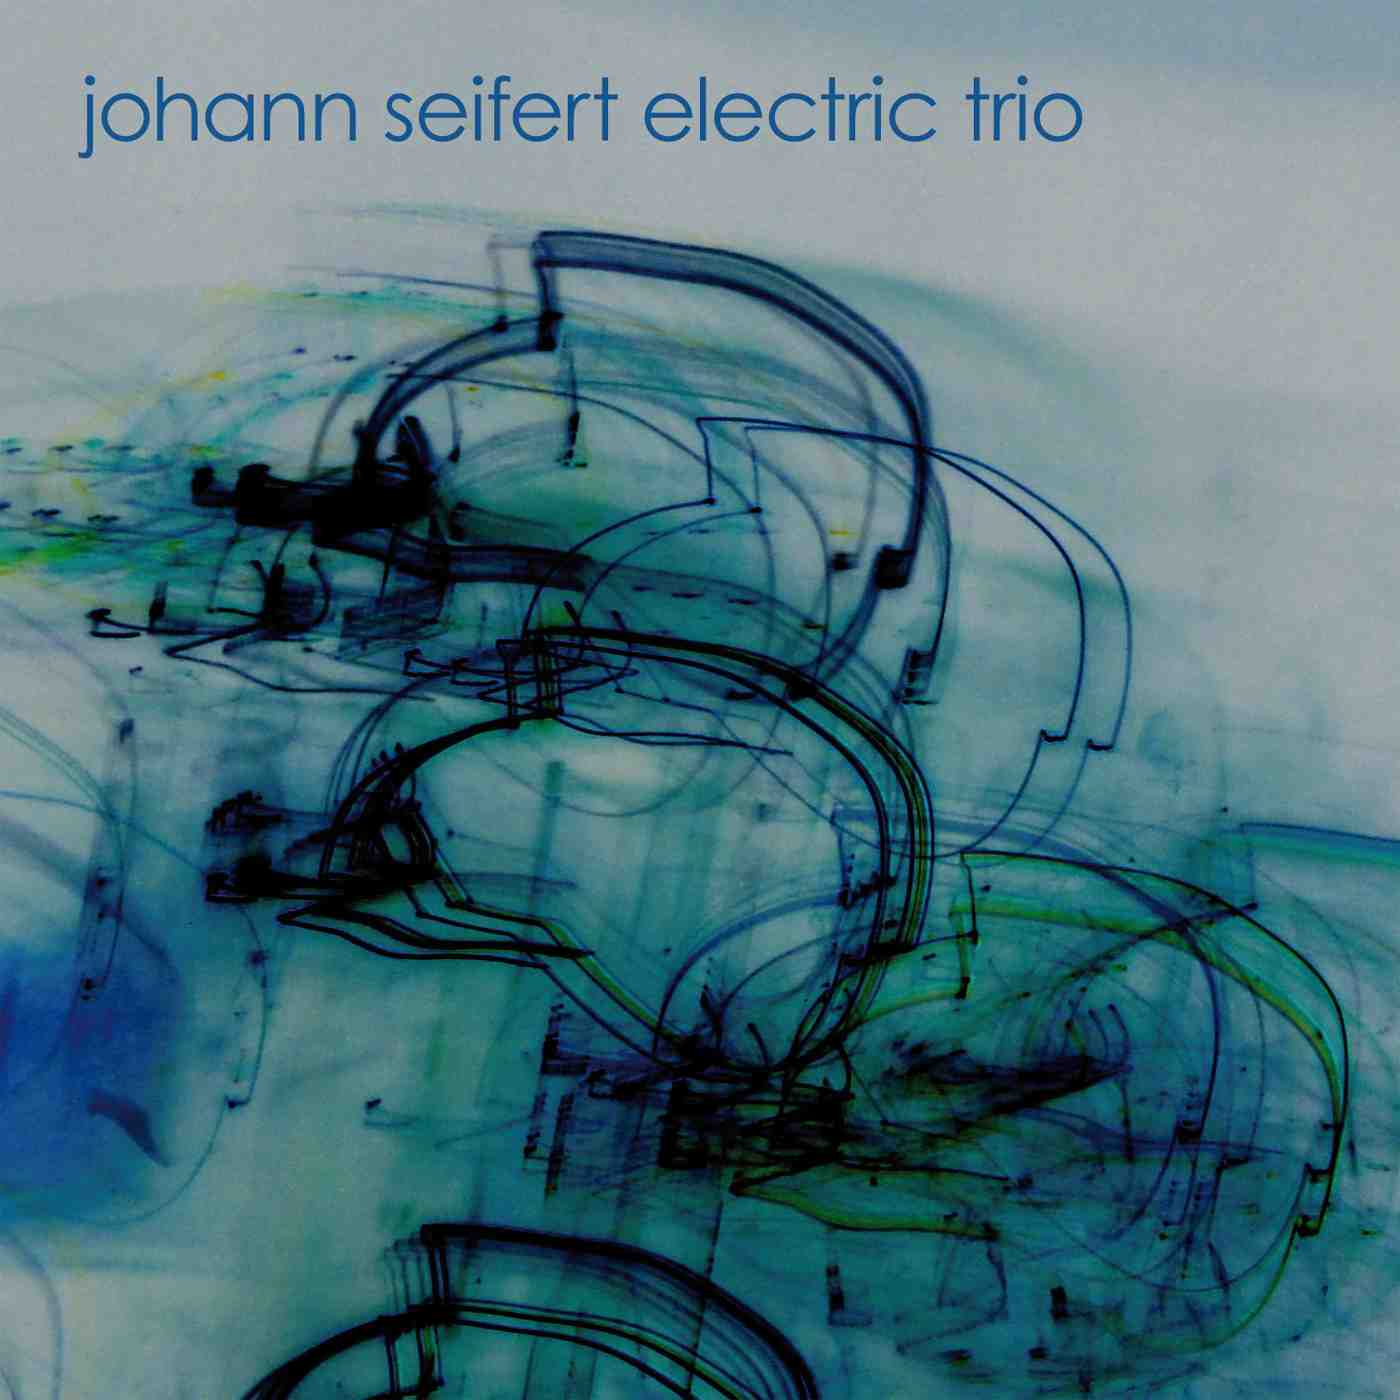 Johann Seifert Electric trio